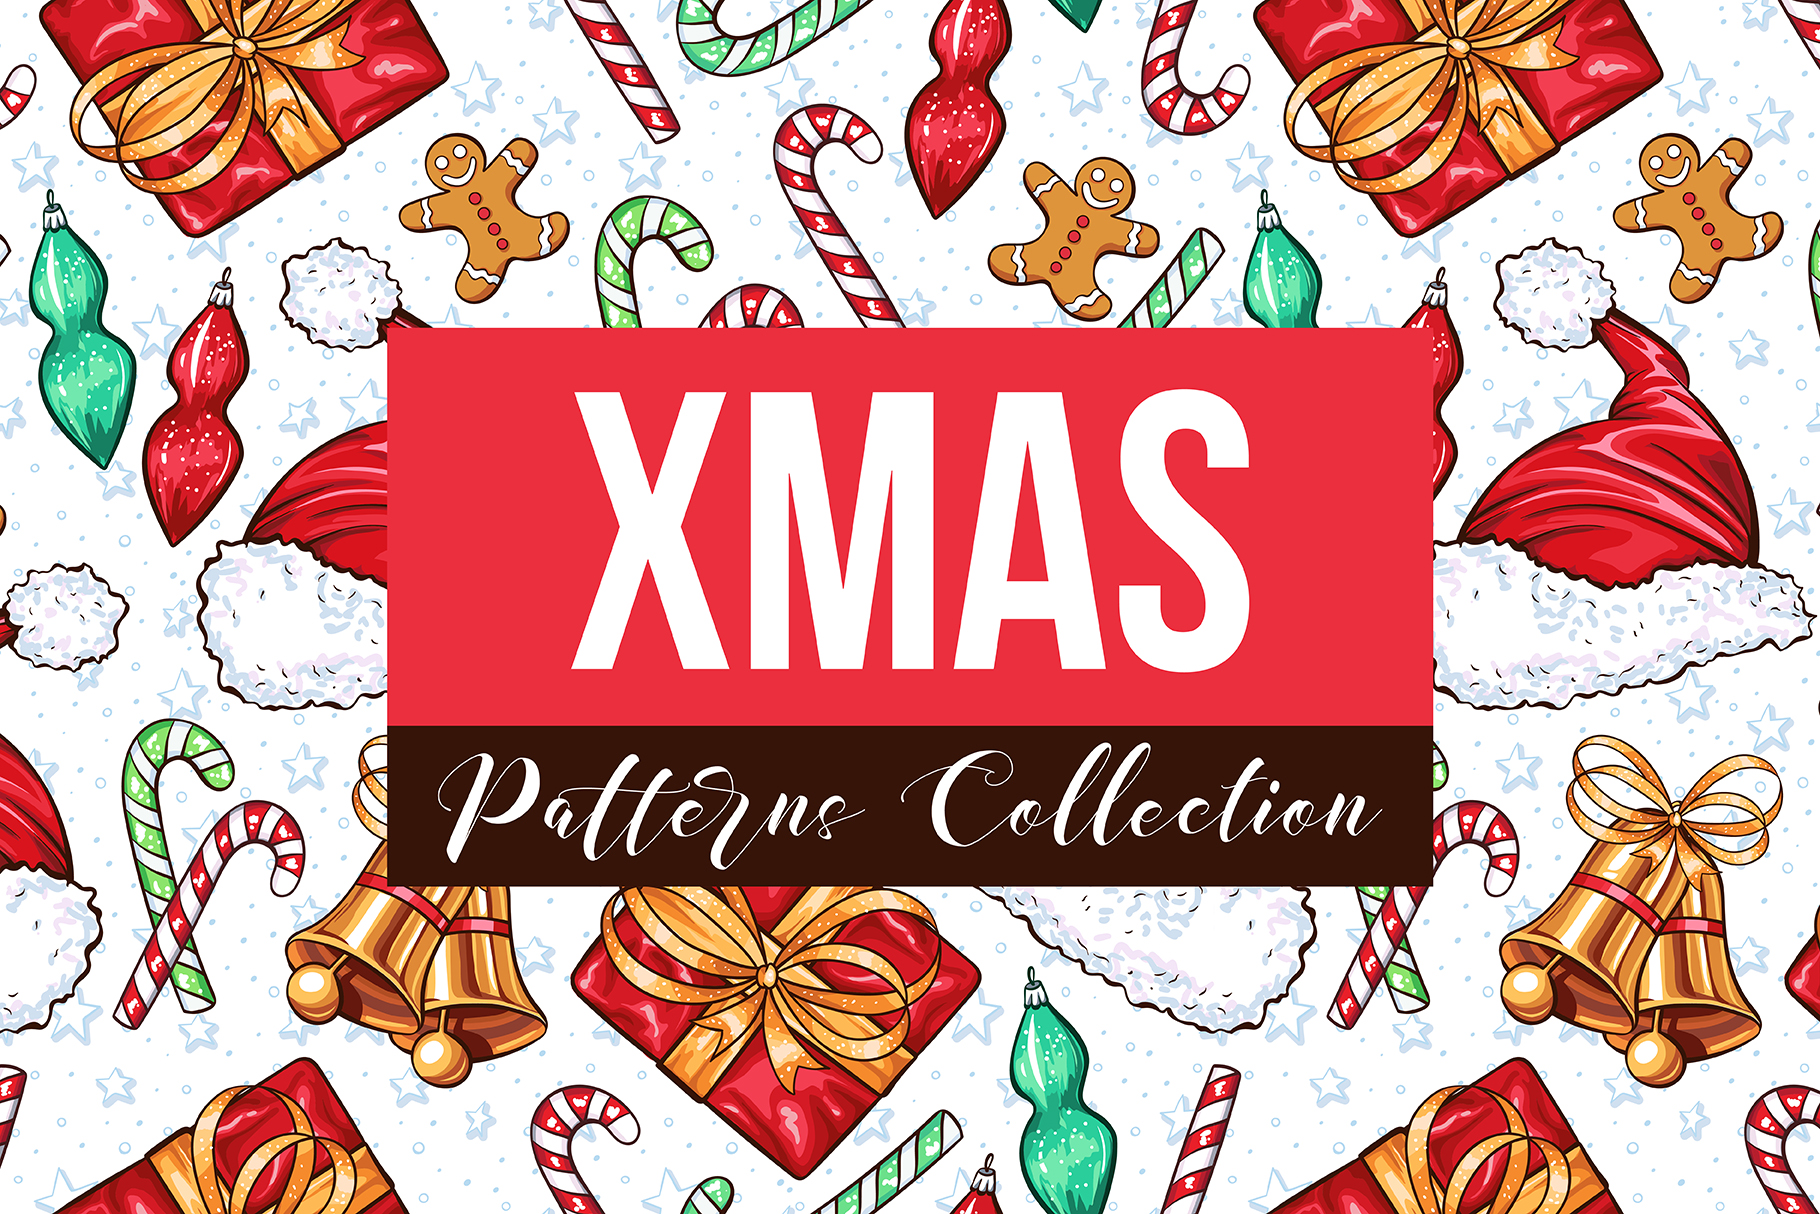 Download Free Big Xmas Patterns Collection Graphic By Ilonitta R Creative for Cricut Explore, Silhouette and other cutting machines.